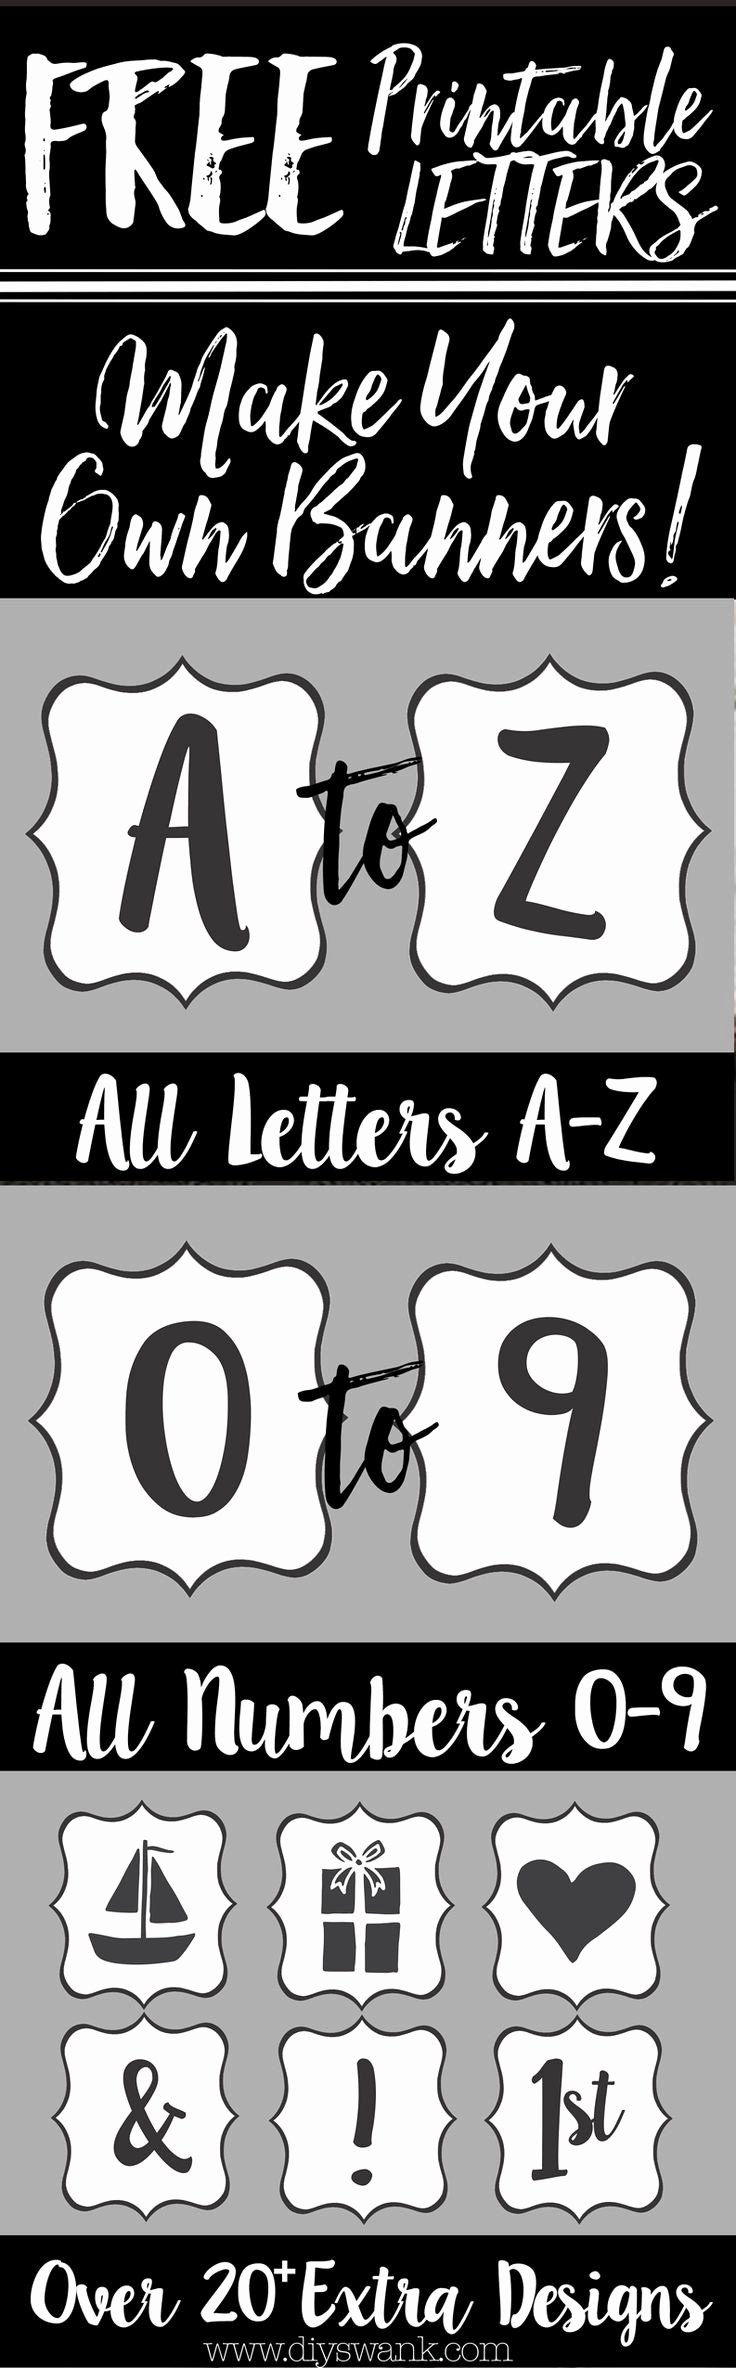 Printable Letter Banners Awesome Best 25 Printable Banner Letters Ideas On Pinterest